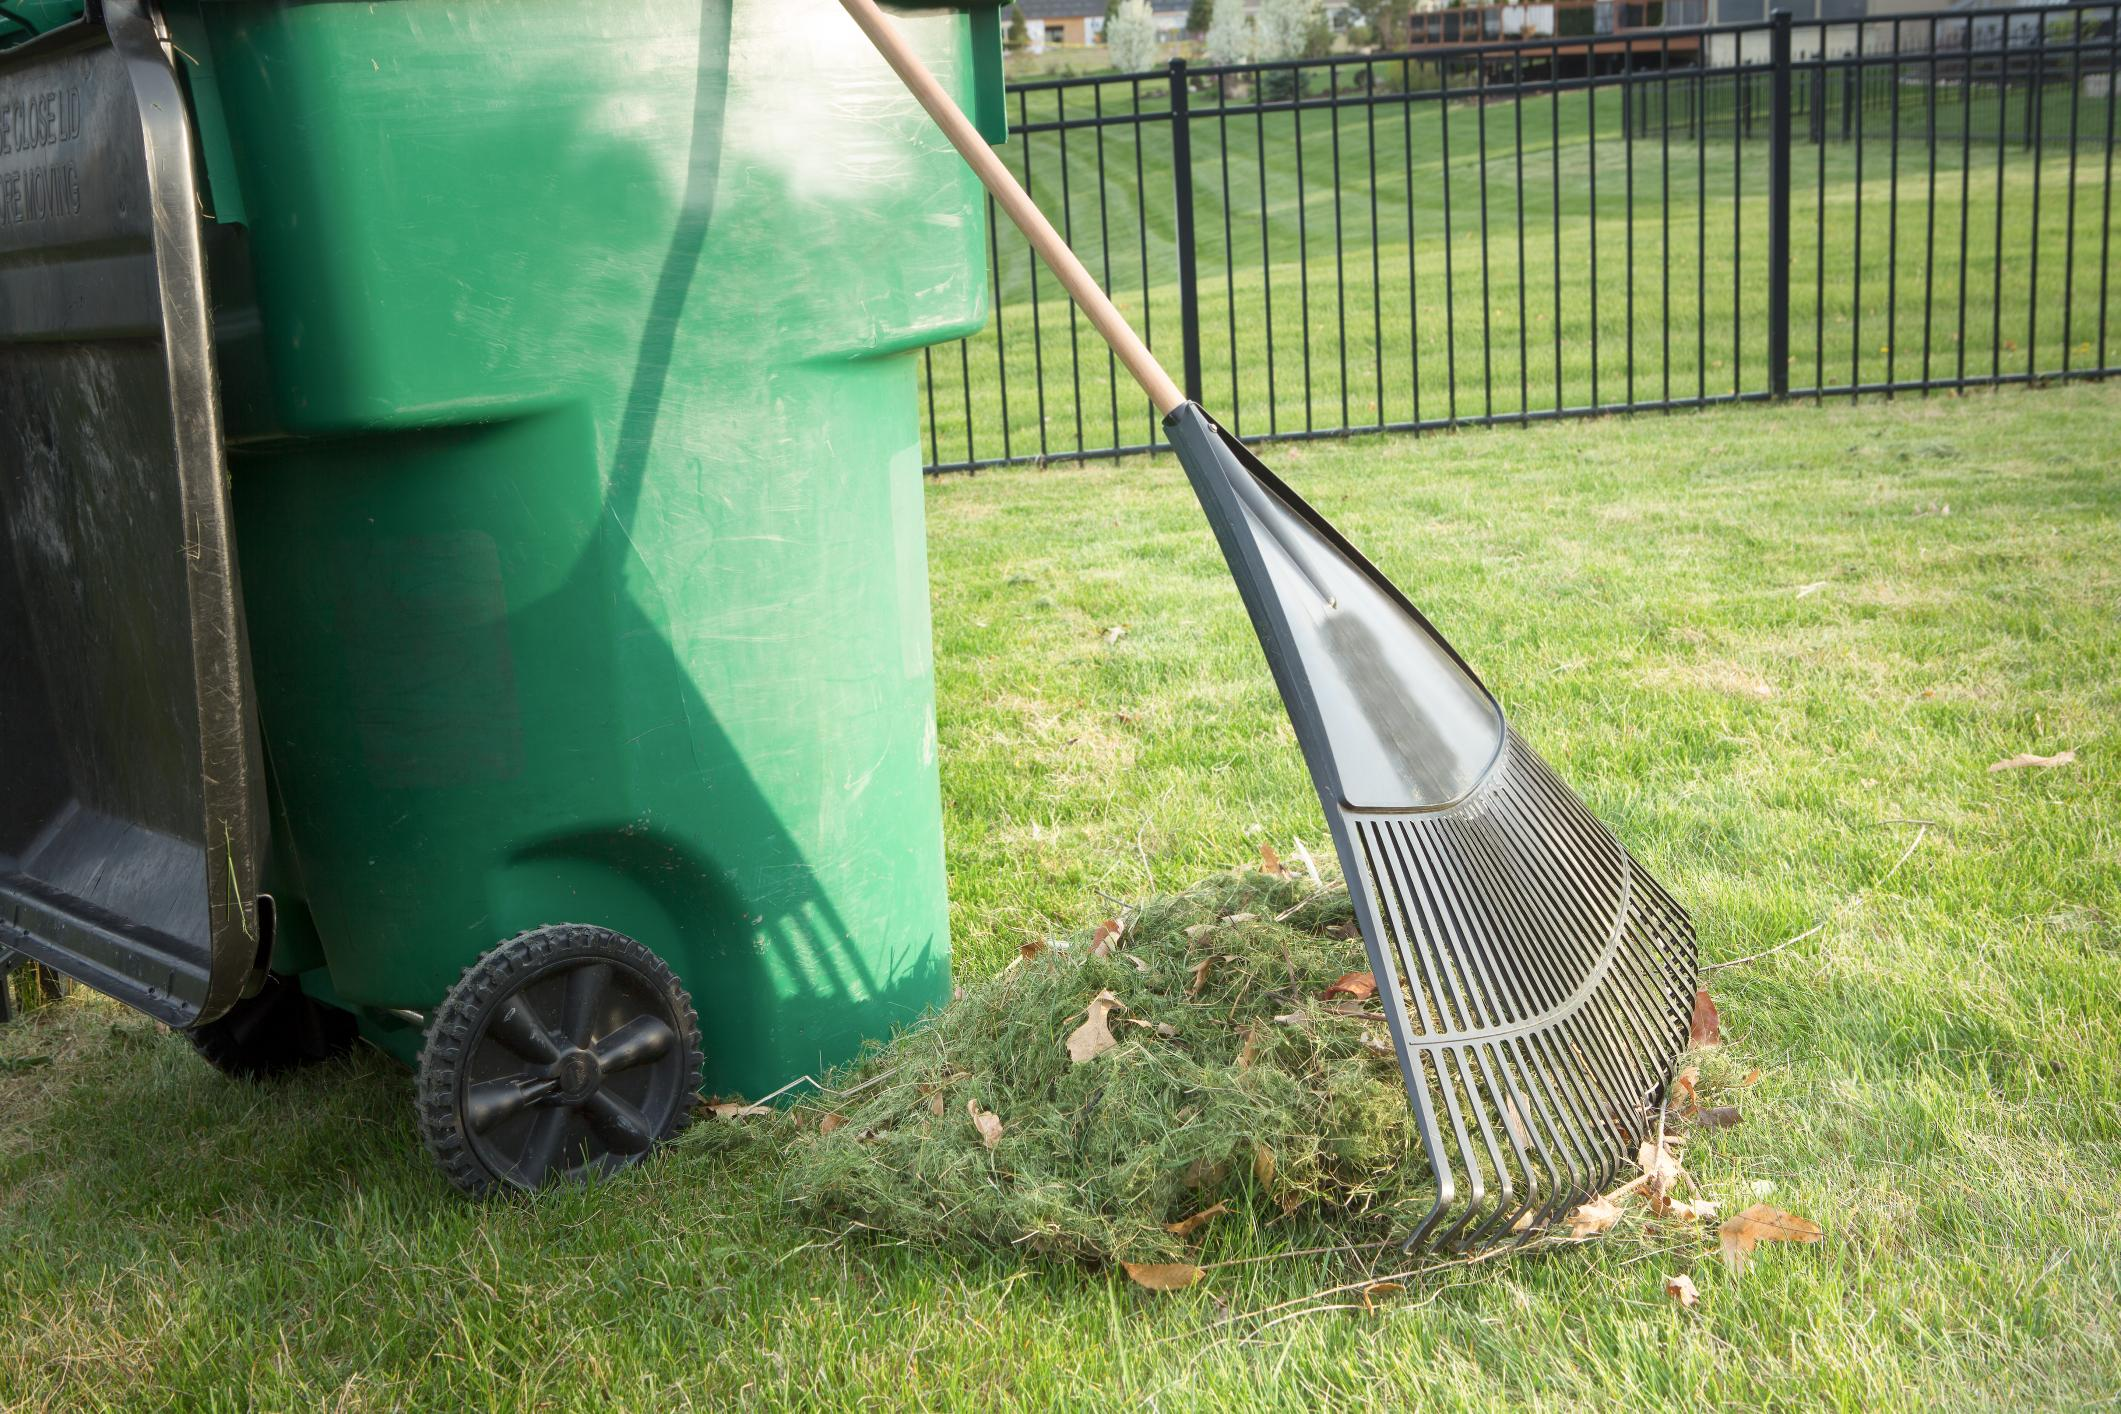 This is a picture of a yard clean up.